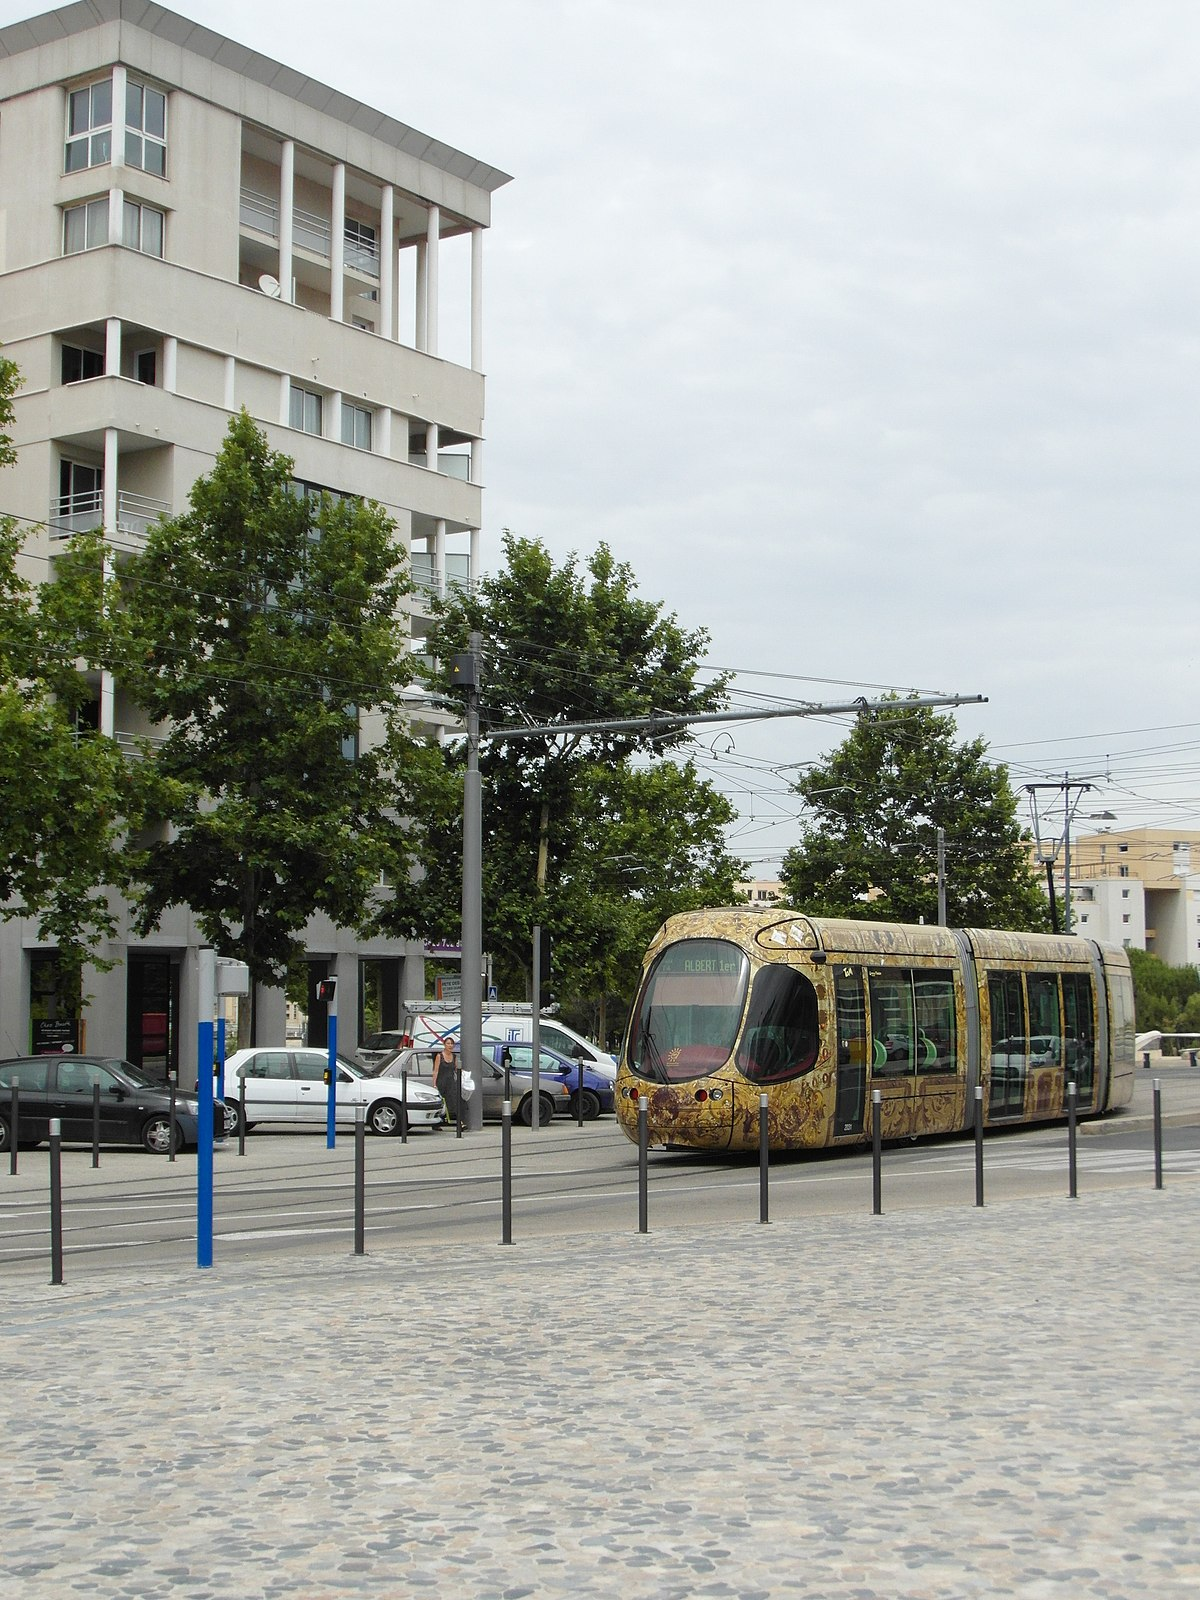 montpellier tram line 3 rome - photo#38